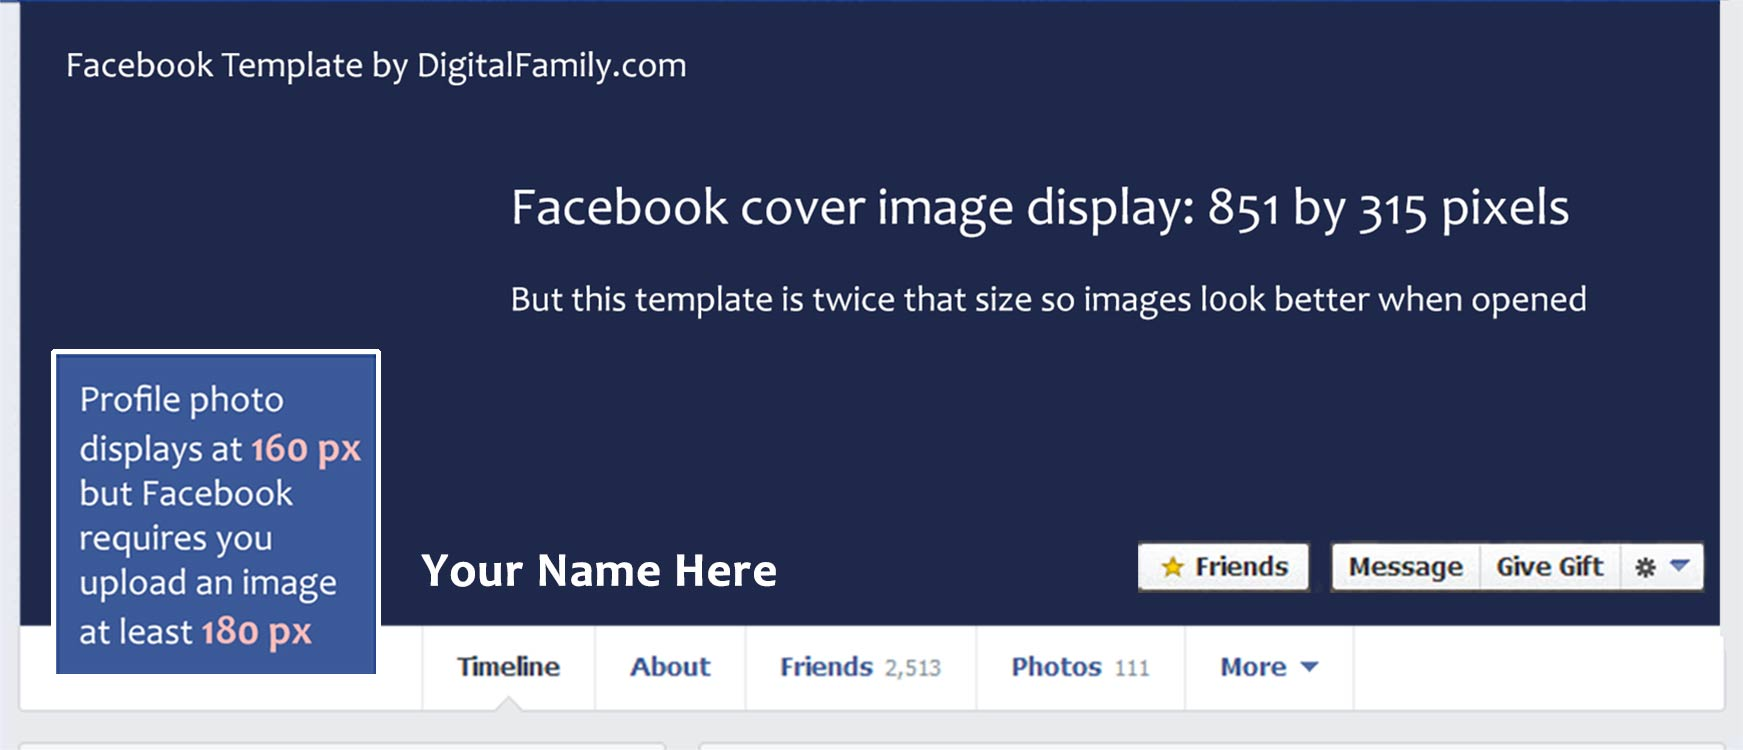 What Size Should You Make Your Facebook Photos